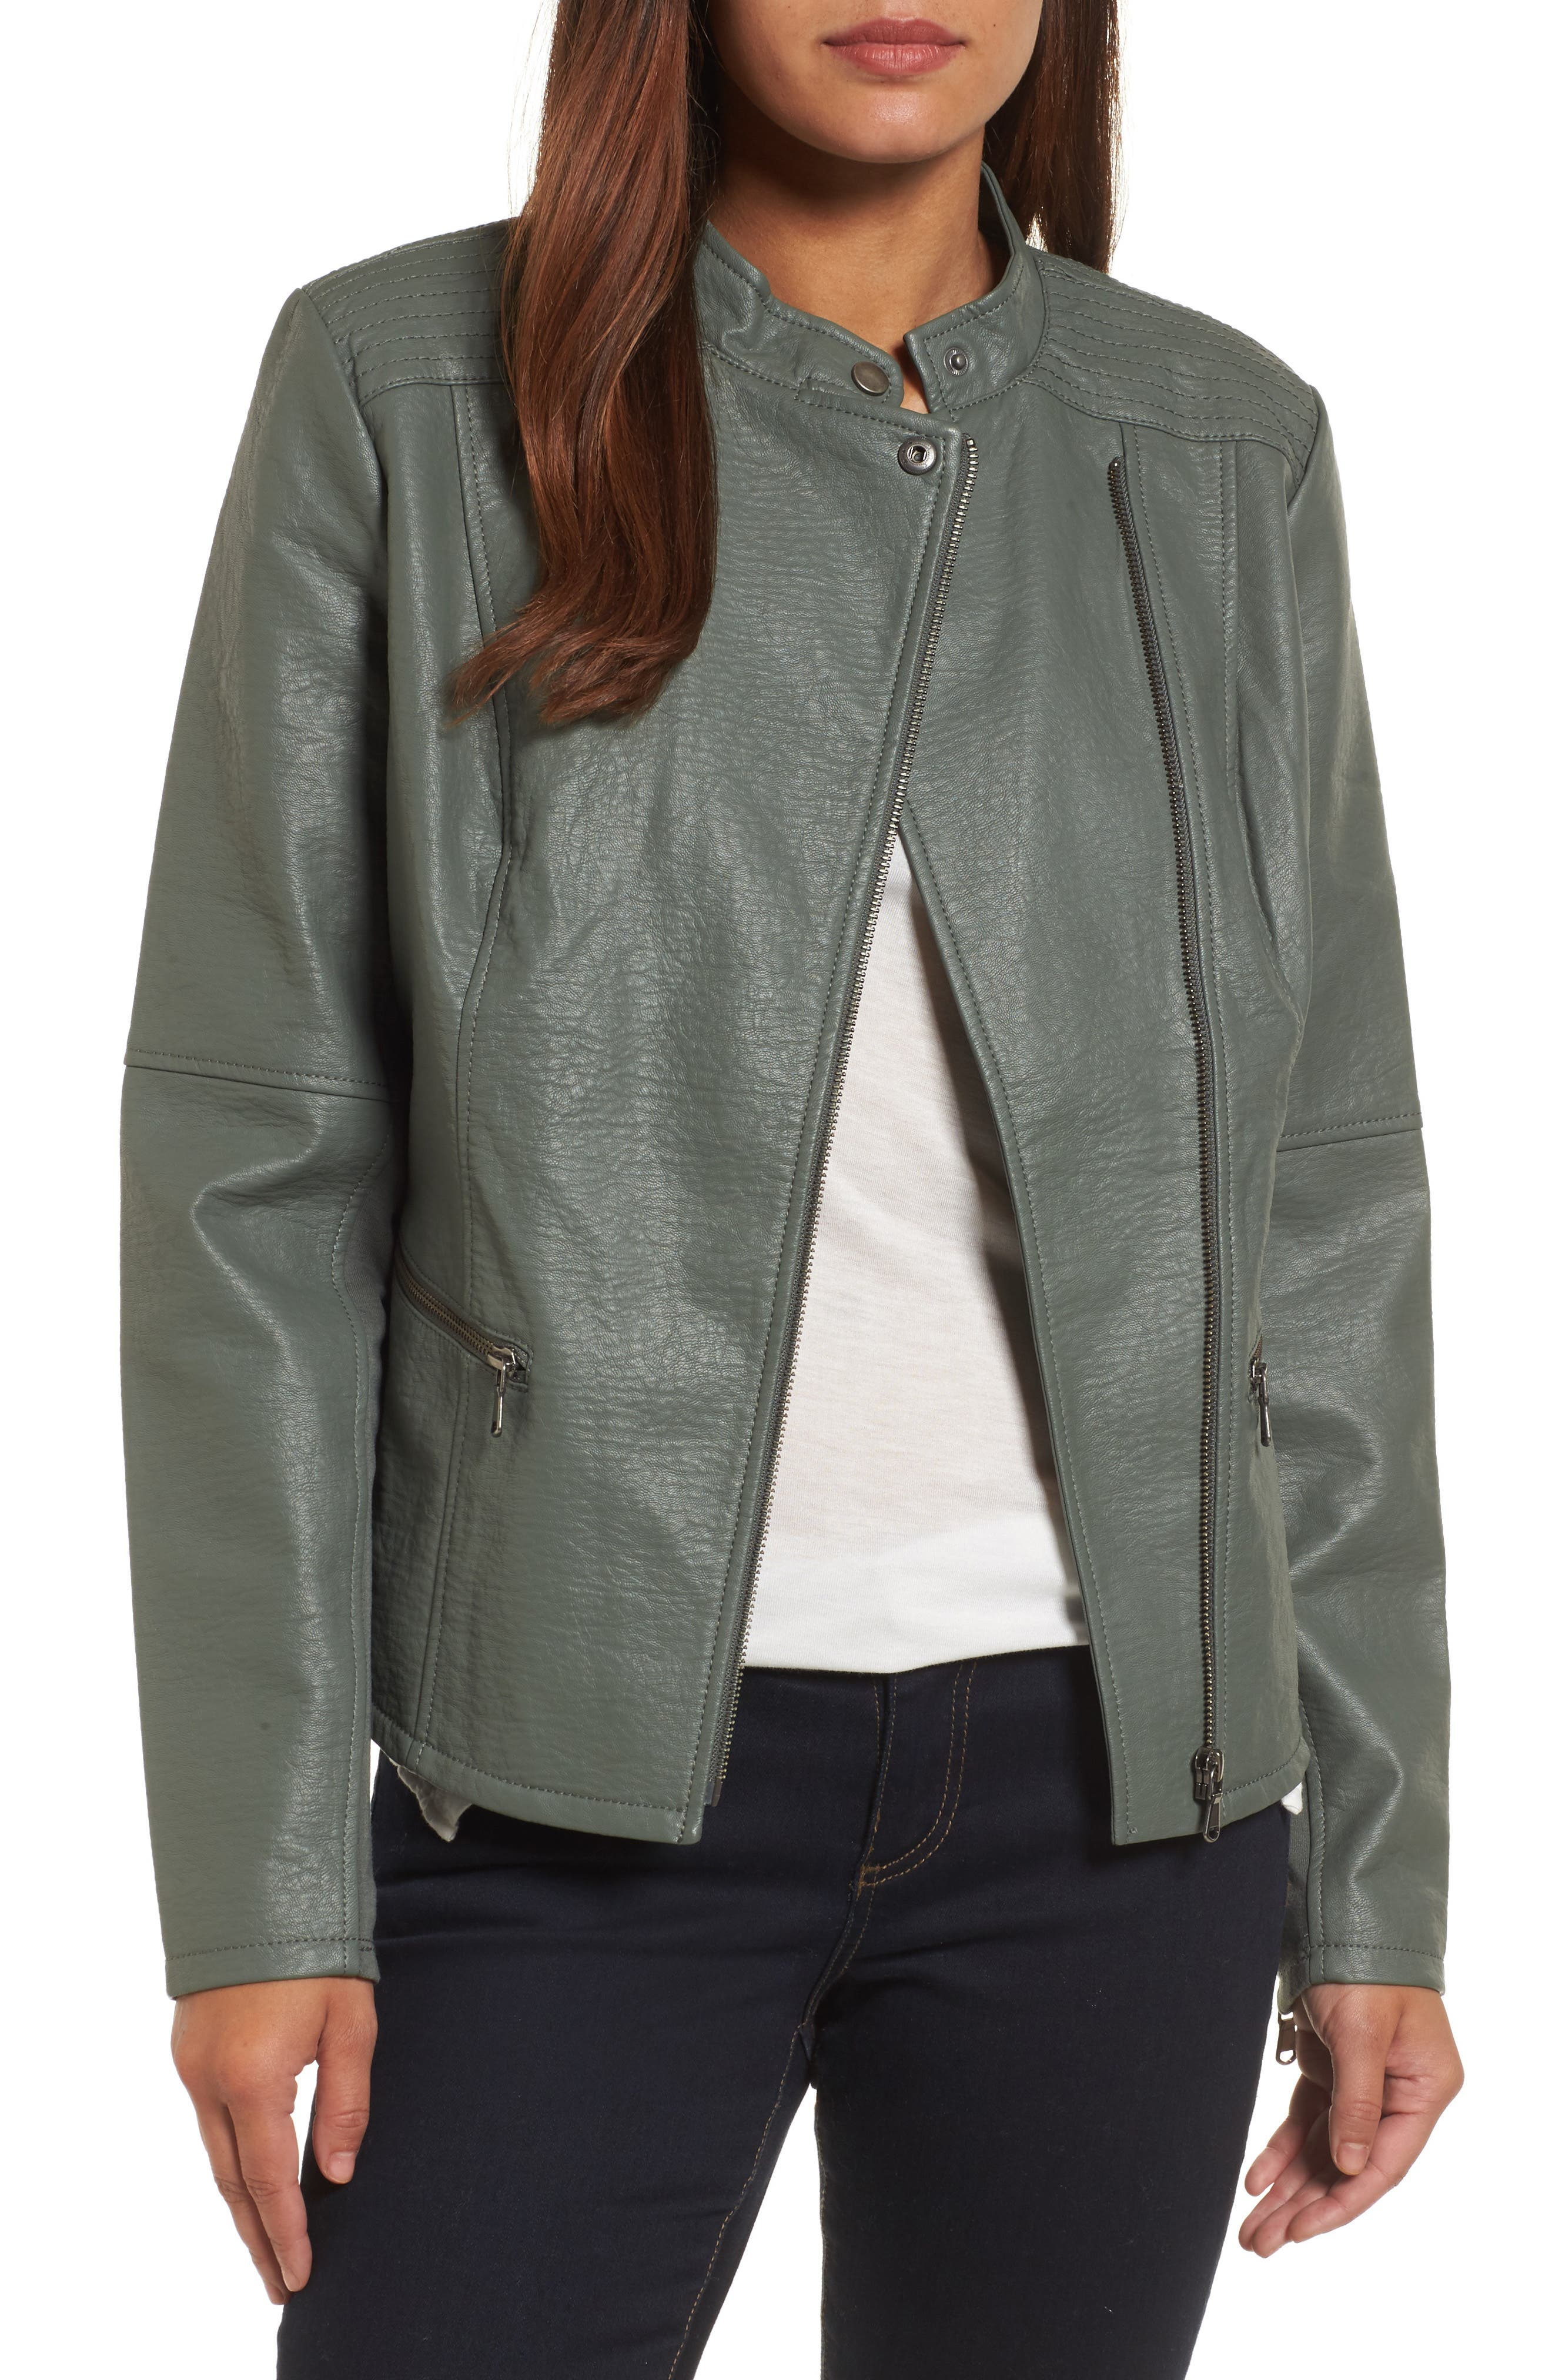 Main Image - NIC+ZOE City Chic Faux Leather Jacket